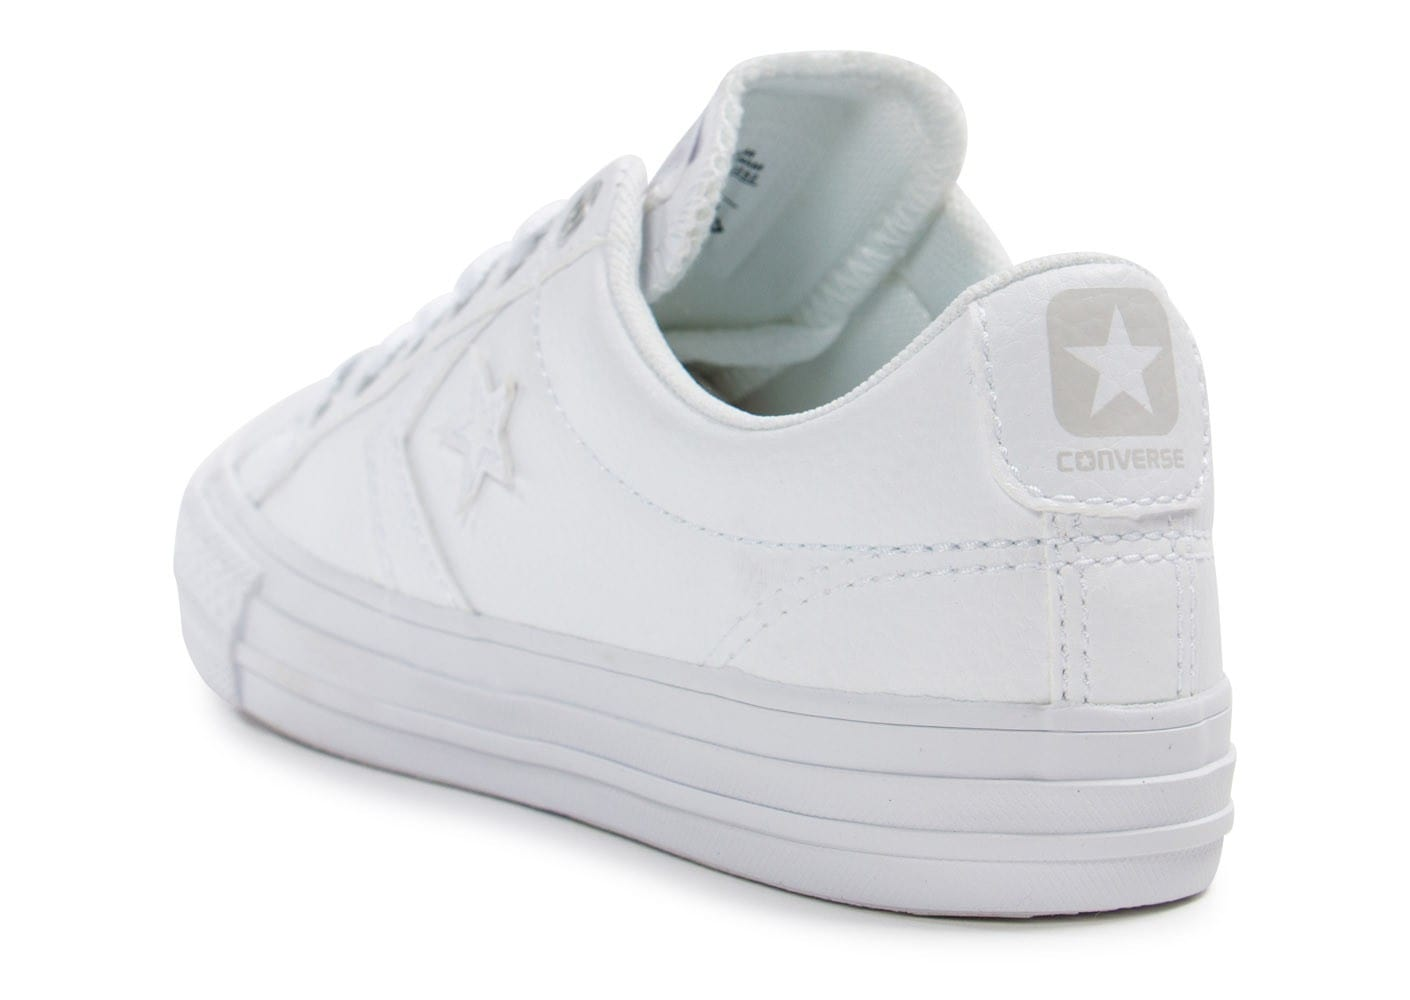 blanche Star Chaussures Toutes Enfant Player les Converse Cuir IAvWw